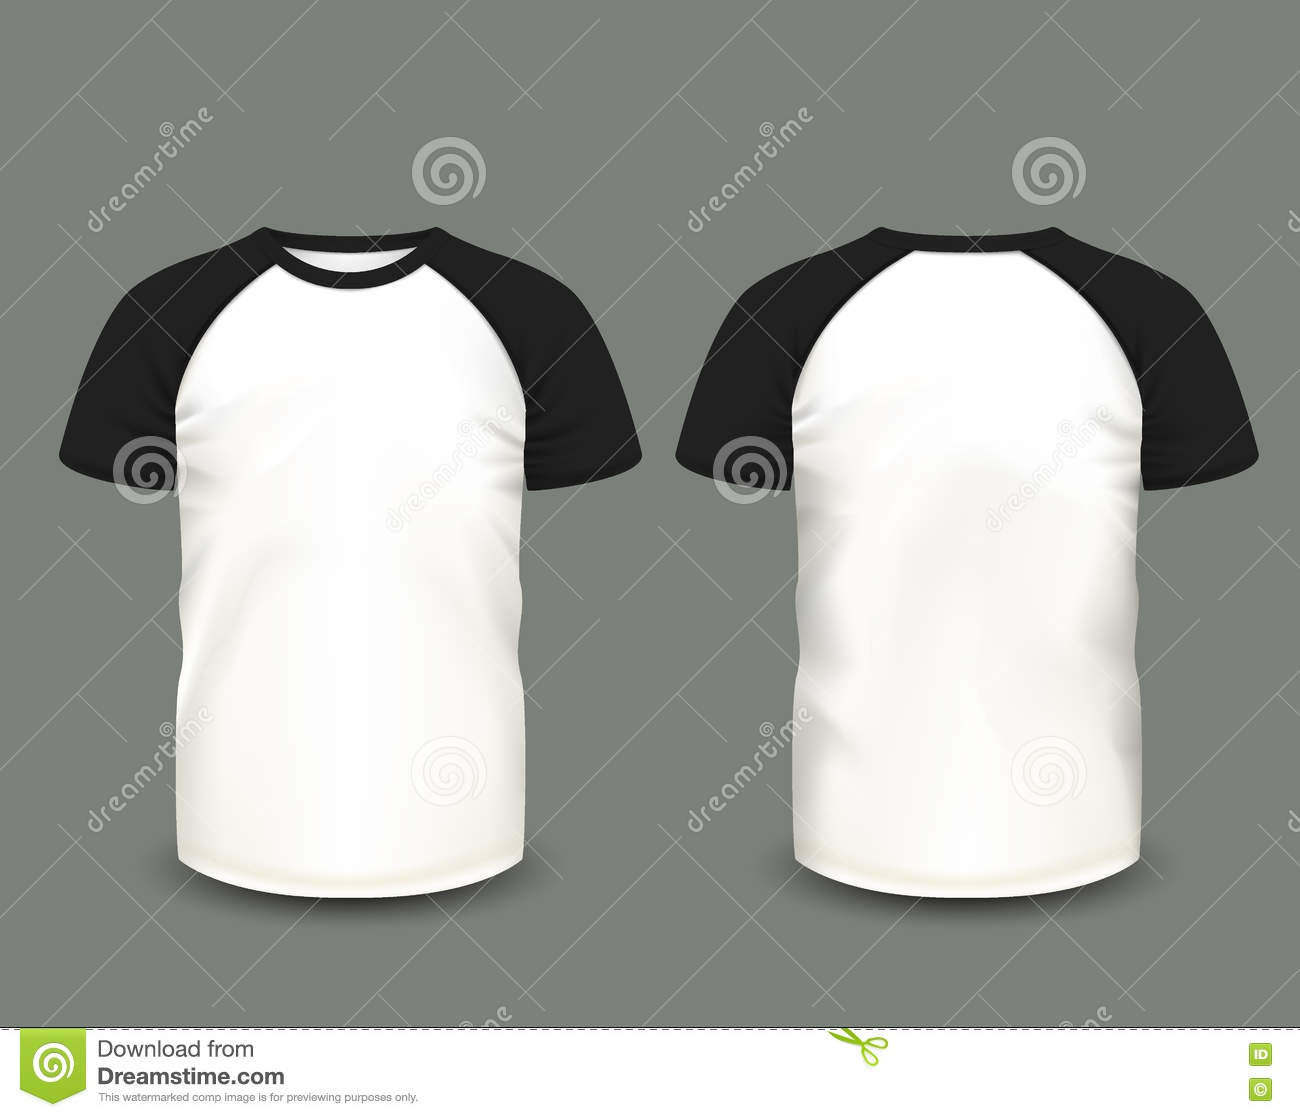 White t shirt front and back template - Royalty Free Vector Download Men S Raglan T Shirt In Front And Back Views Vector Template